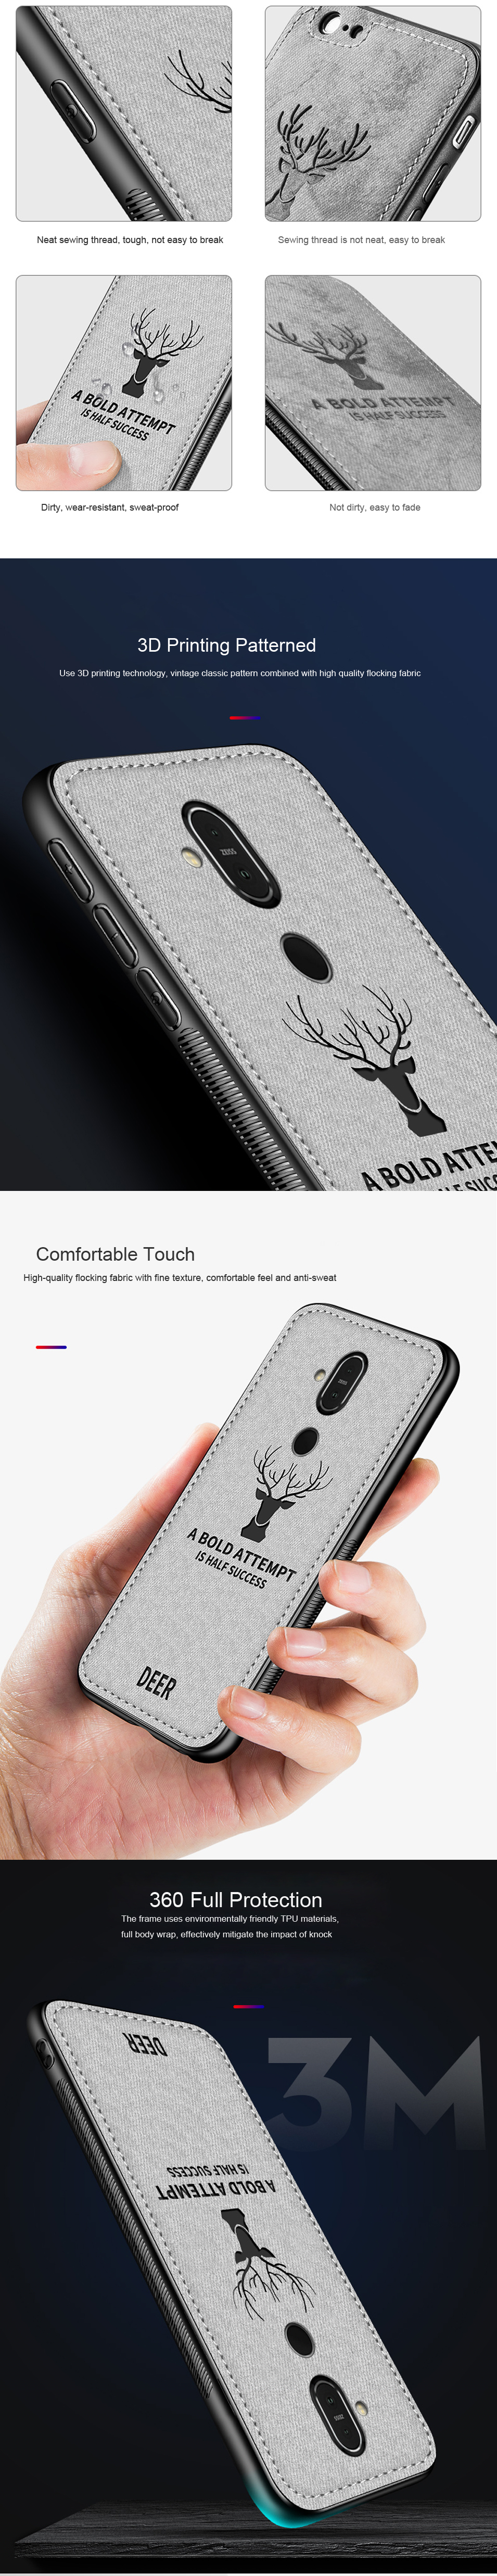 DEER Patterned Classic Retro Cloth Cases for Nokia 7 Plus x7 x6 x5 8 Sirocco Case Soft Back Cover For Nokia X7 X6 X5 Shell Coque (9)